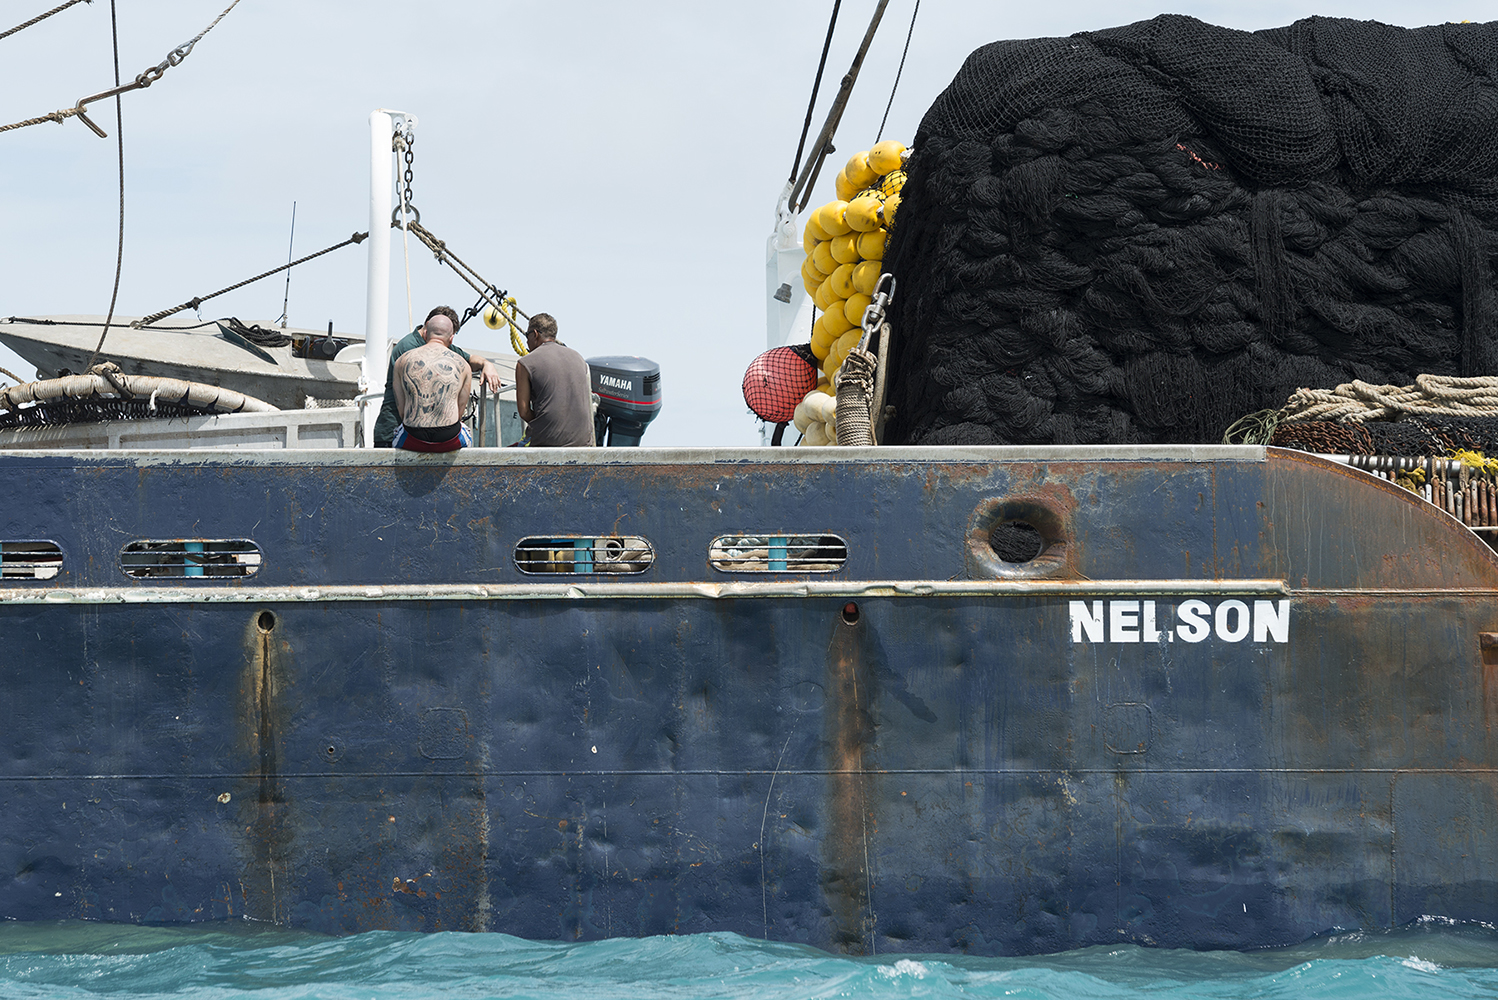 Tarawa Island, Kiribati, Pacific Ocean Purse seine fishing vessel Eagle from New Zealand outside the harbour of Betio, on Tarawa Island, waiting for transhipment of tuna to a reefer ship, a refrigerated cargo ship.